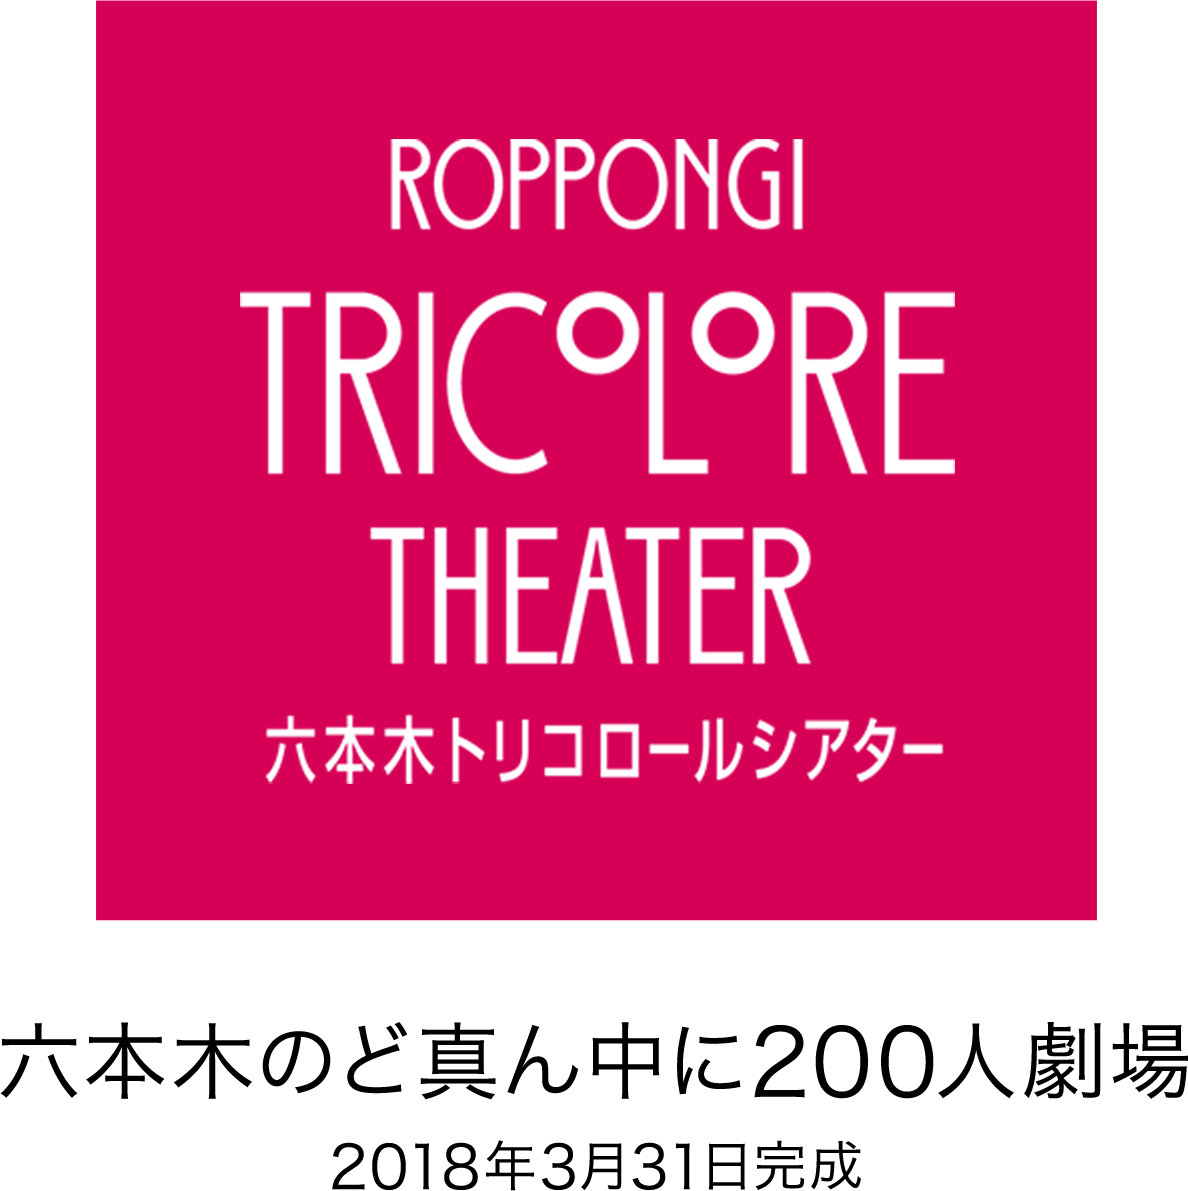 Roppongi Tricolore Theater 六本木のど真ん中に200人劇場 2018年3月31日完成